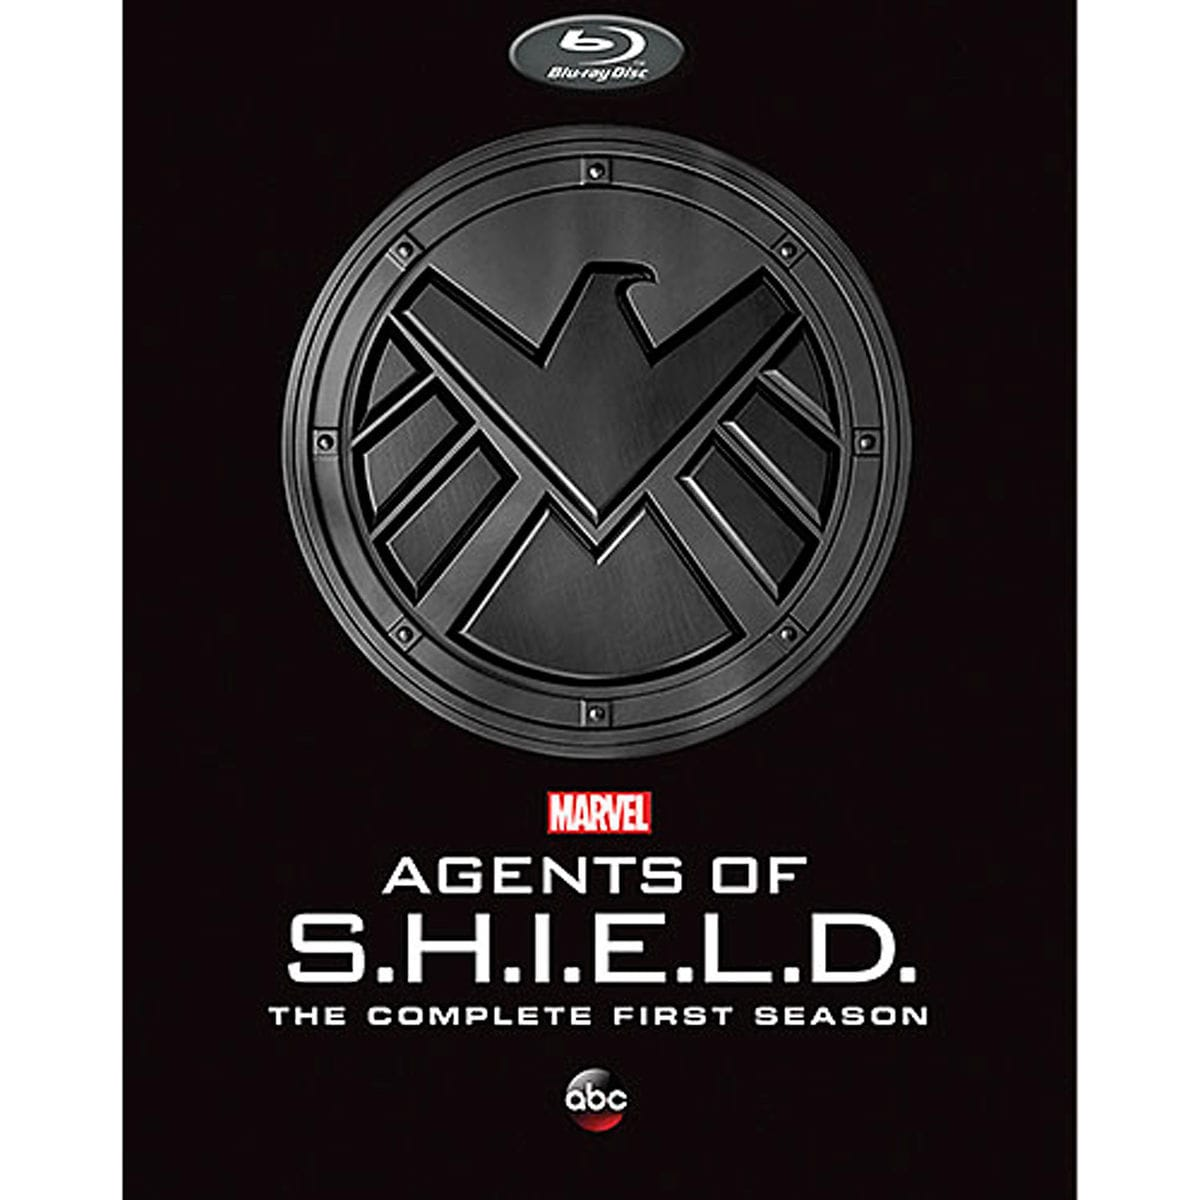 Marvels Agents Of Shield The Complete First Season Blu Ray